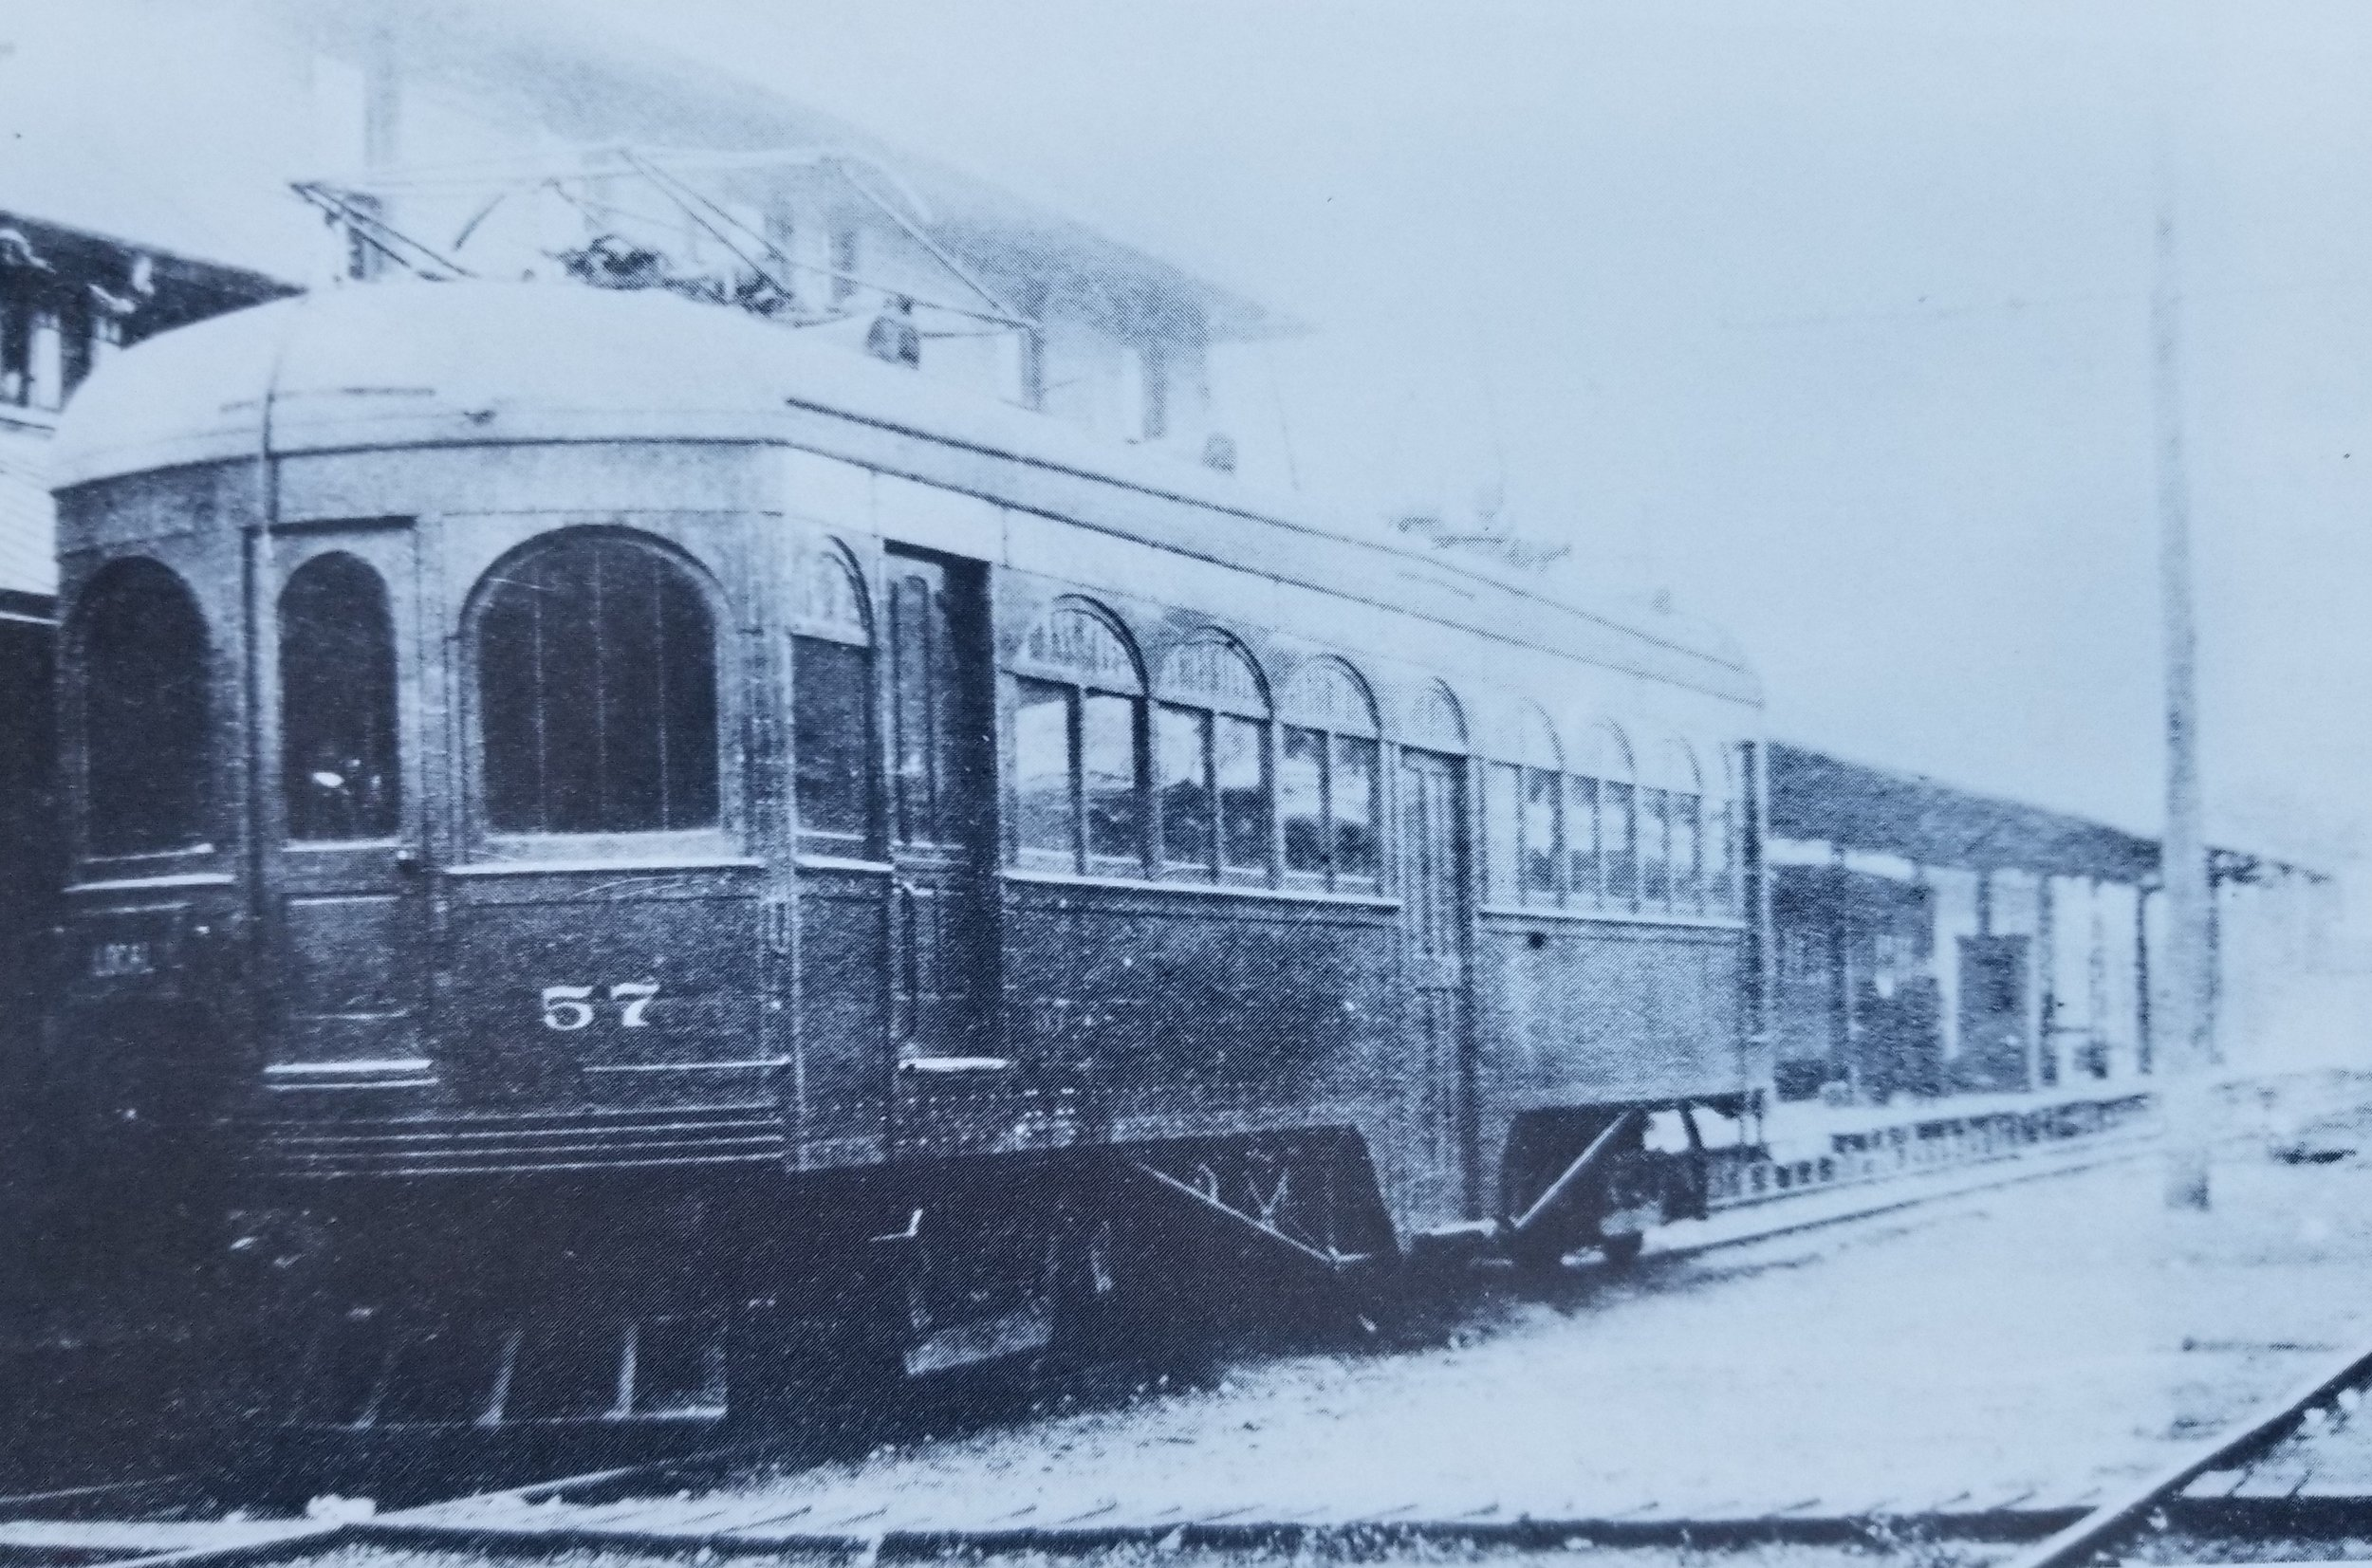 Baltimore & Annapolis Railroad Car #57 at Bladen Street Station. Annapolis, Maryland Date: Unknown. Source: King Collection.